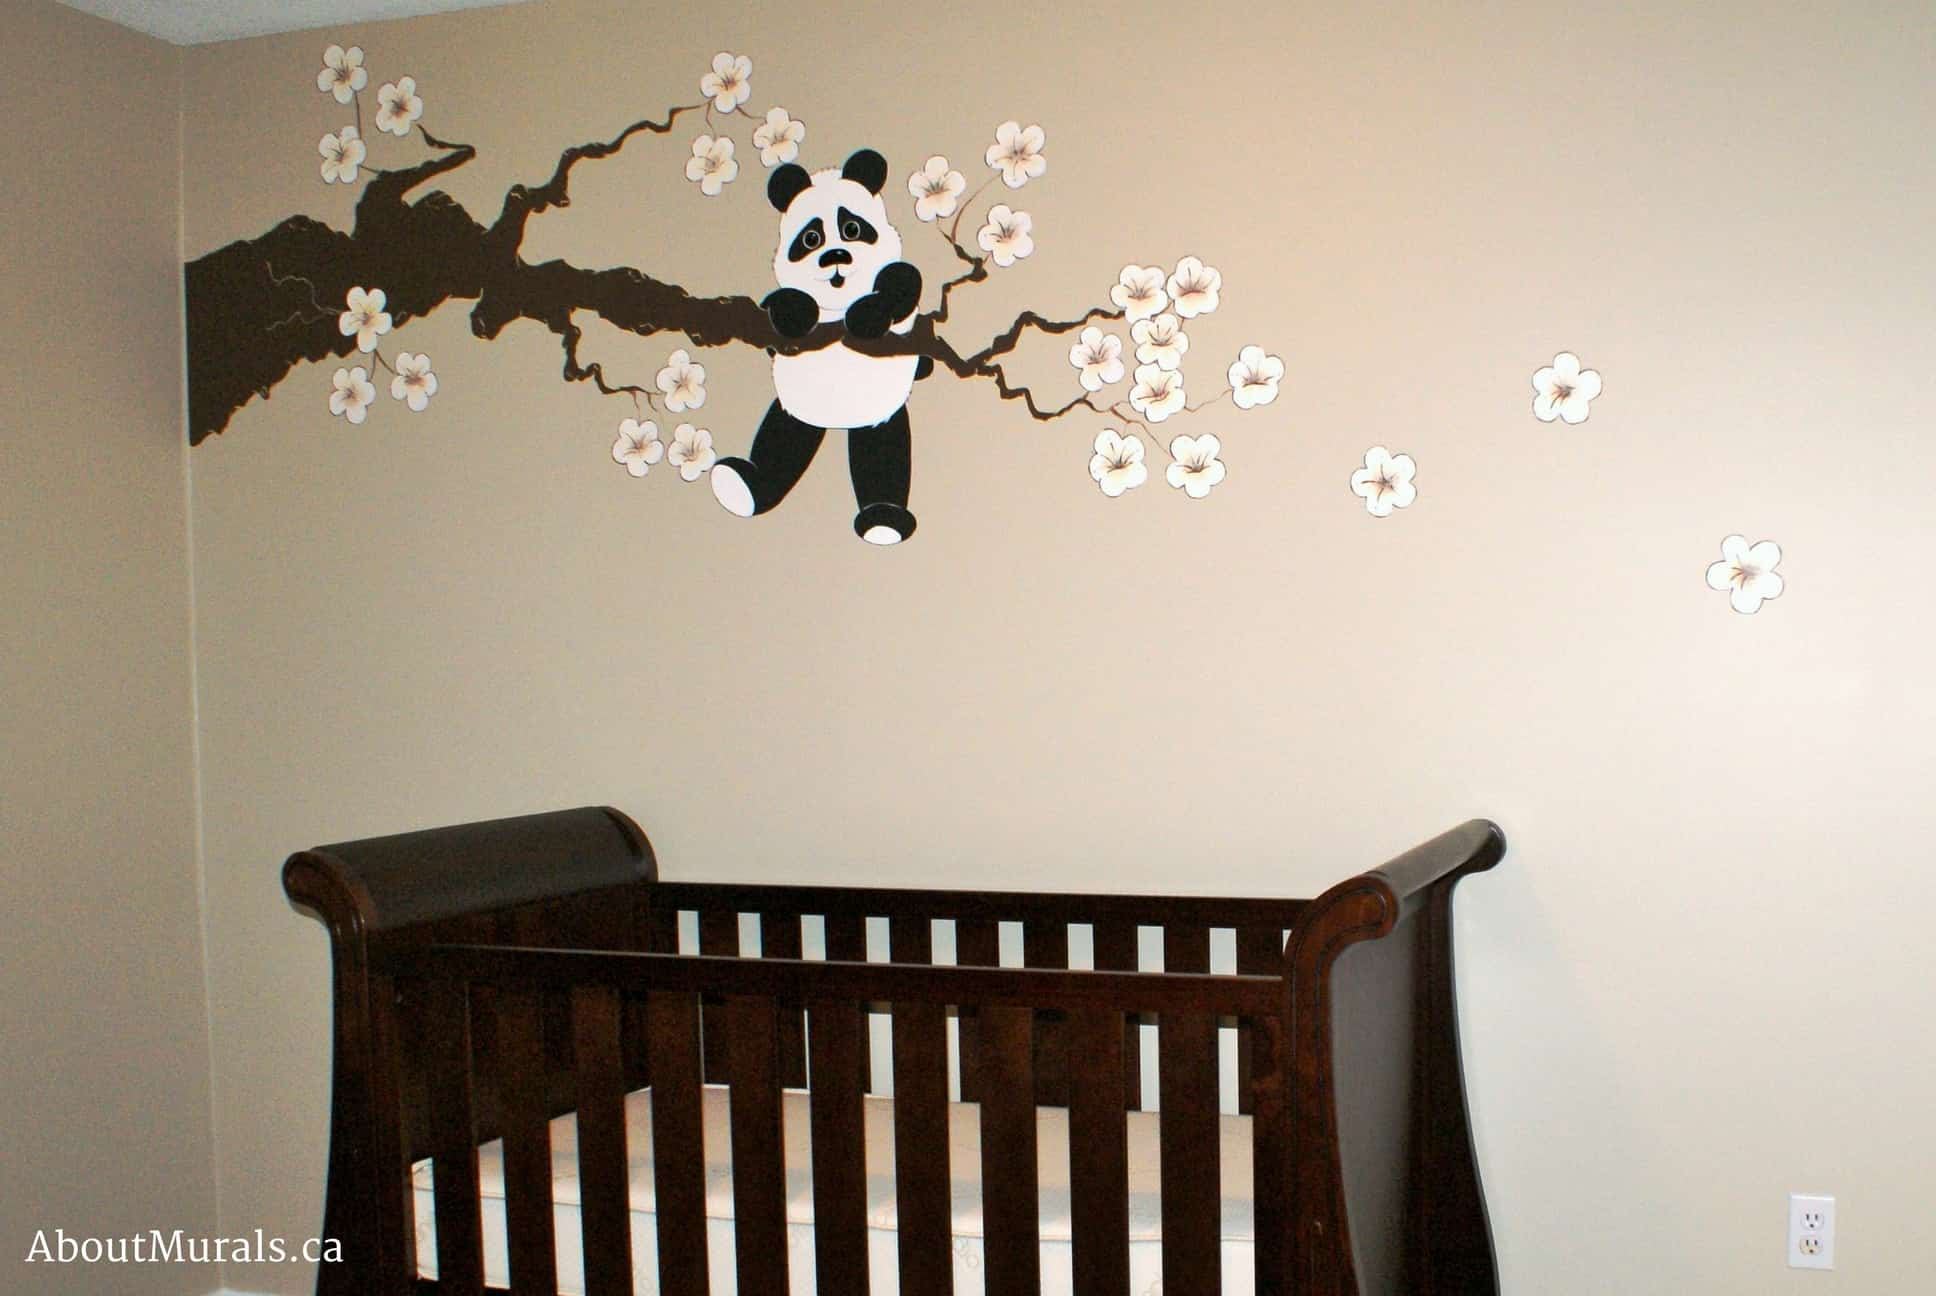 A kids wall mural featuring a panda hanging on to a cherry blossom tree over a baby crib